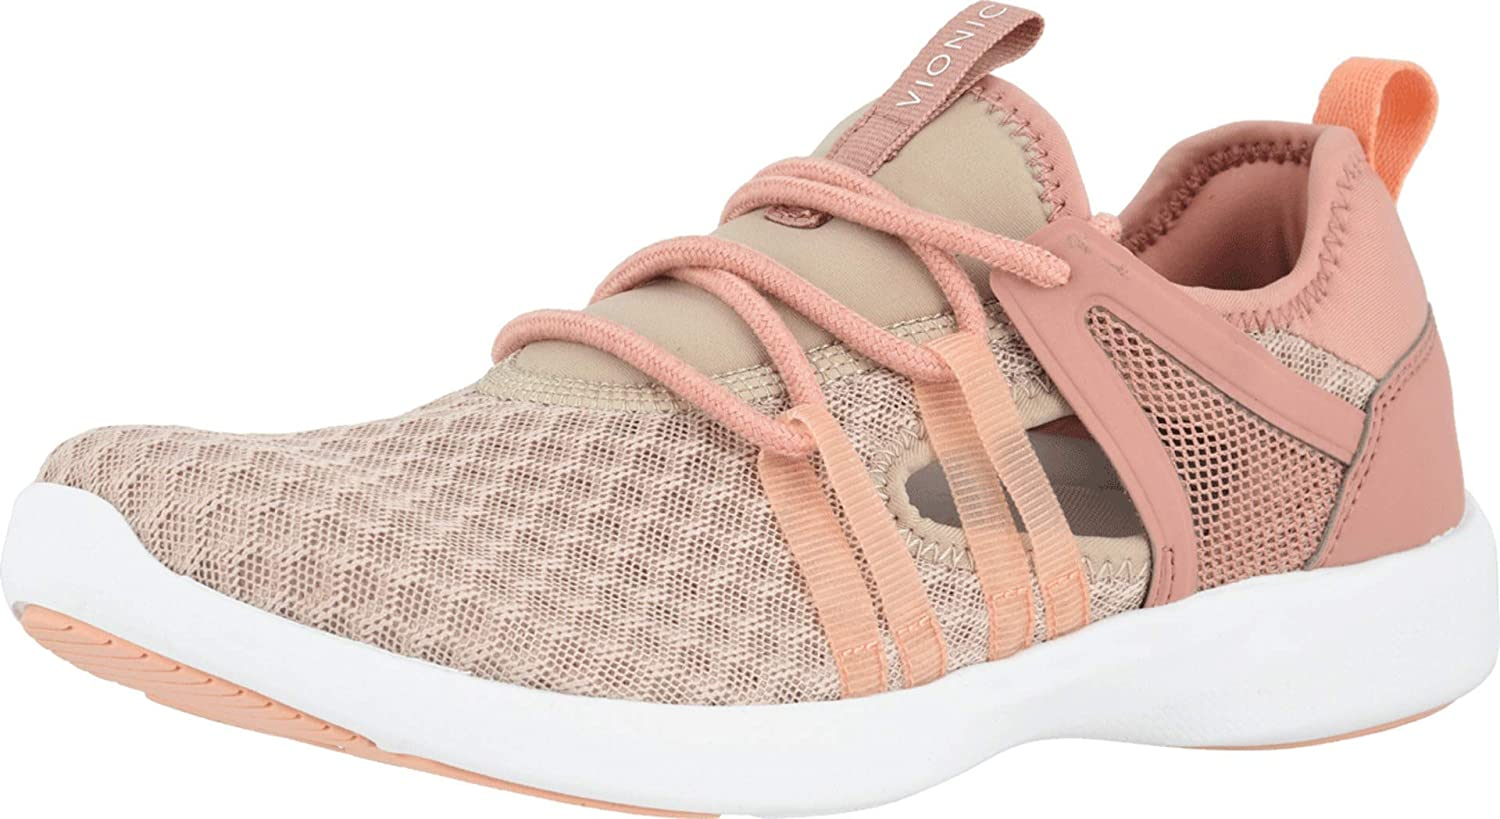 Vionic Women's New sales Sky Outlet SALE Adore Leisure -Supportive Walking Shoes